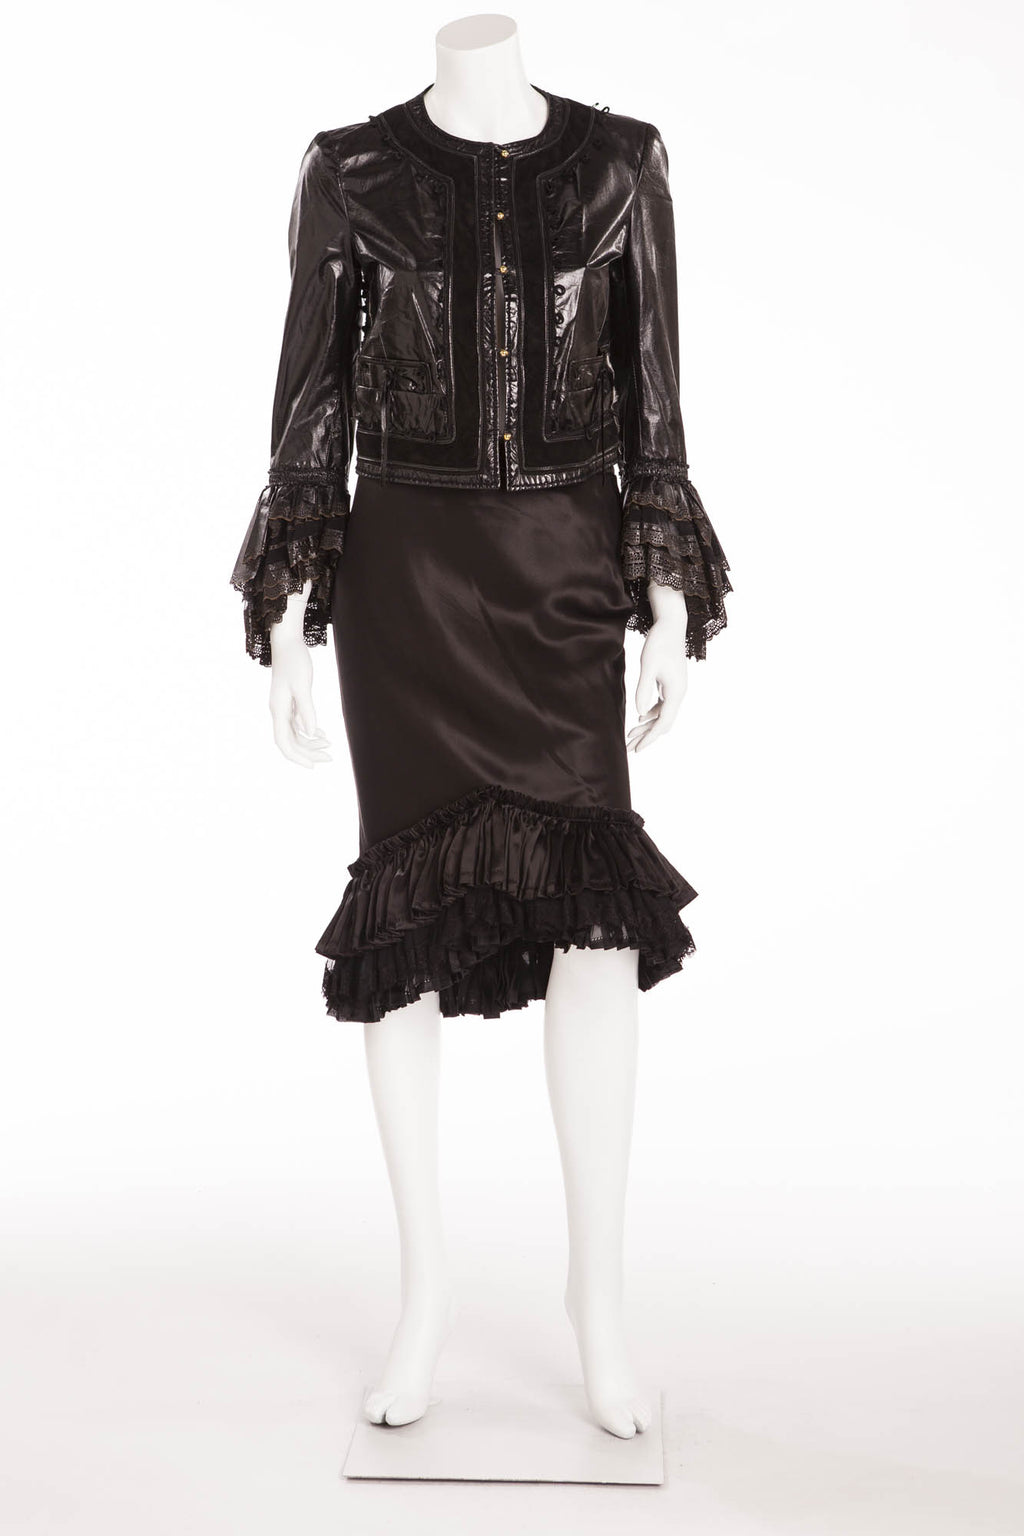 Roberto Cavalli - 2PC Black Lace Jacket and Skirt with Ruffles - IT 40